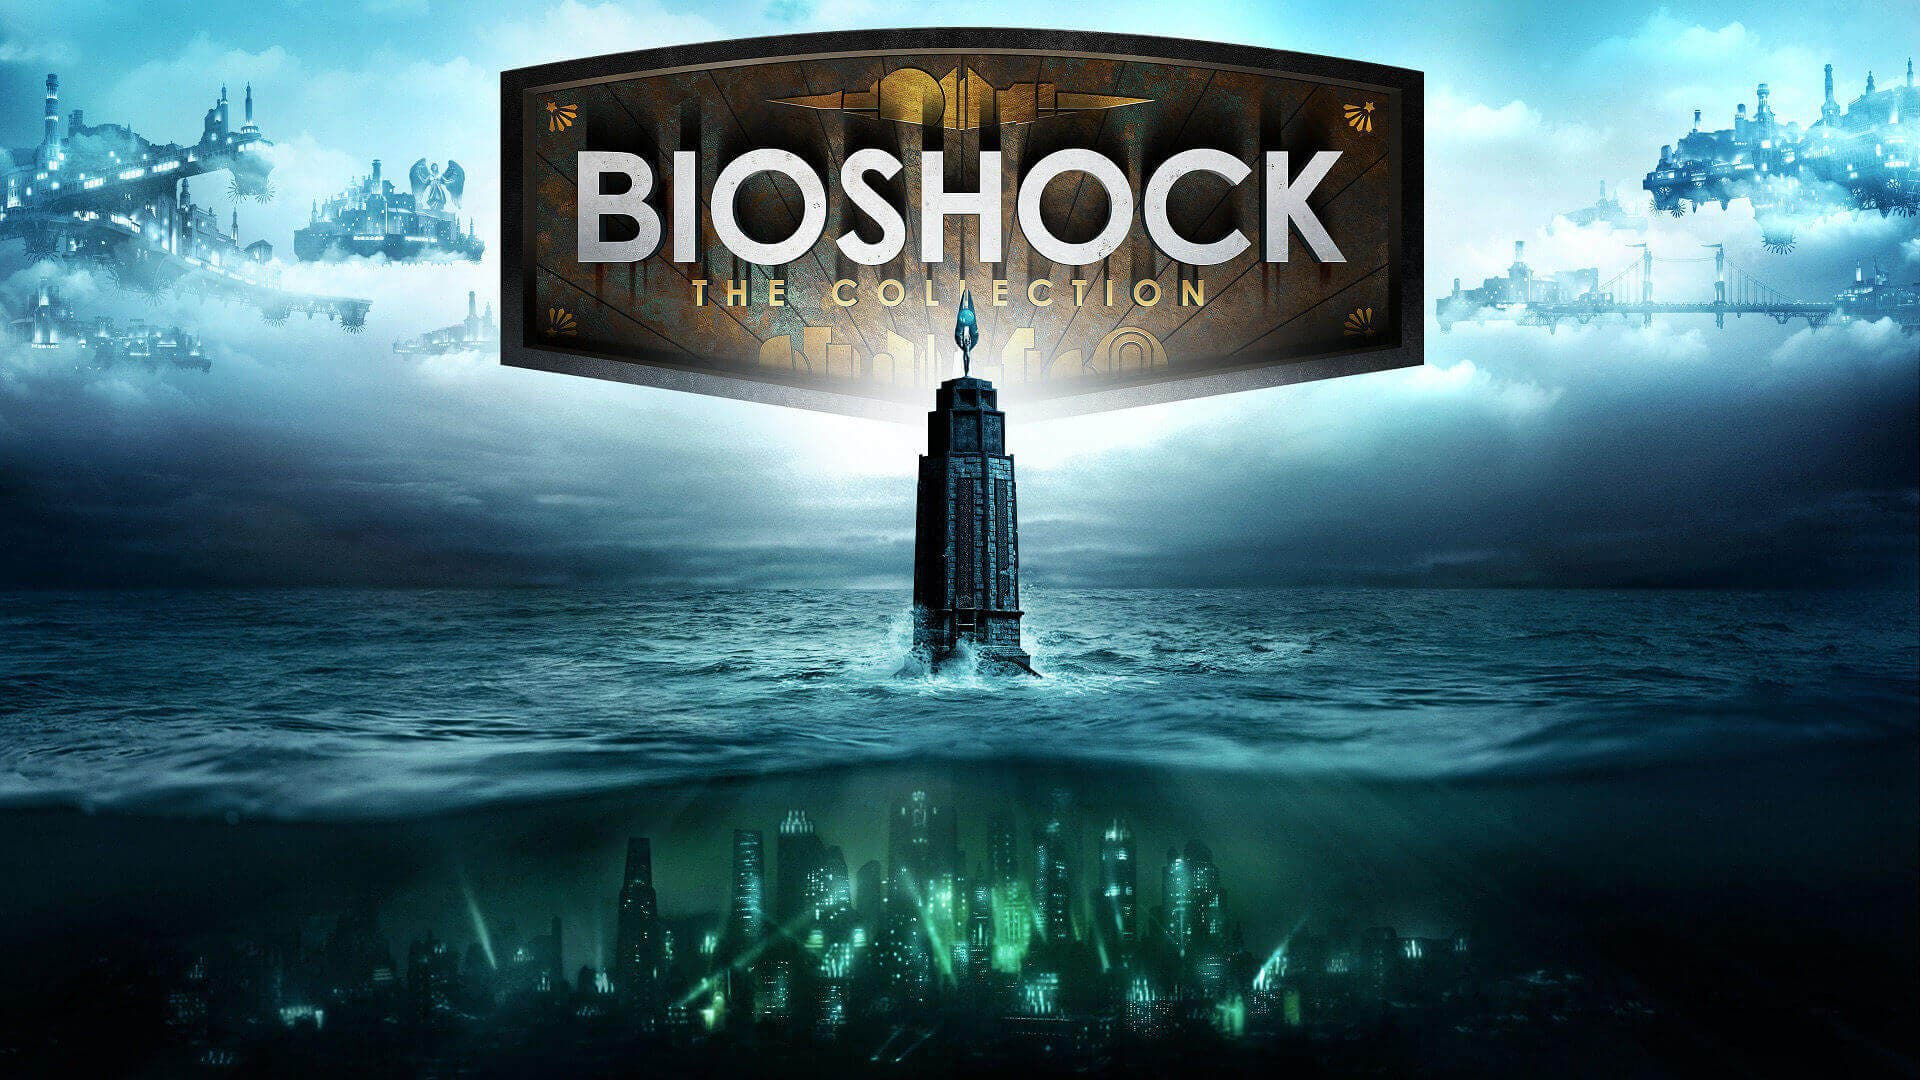 A Digital Foundry le decepciona el parche de Bioshock The Collection para Xbox One X 8